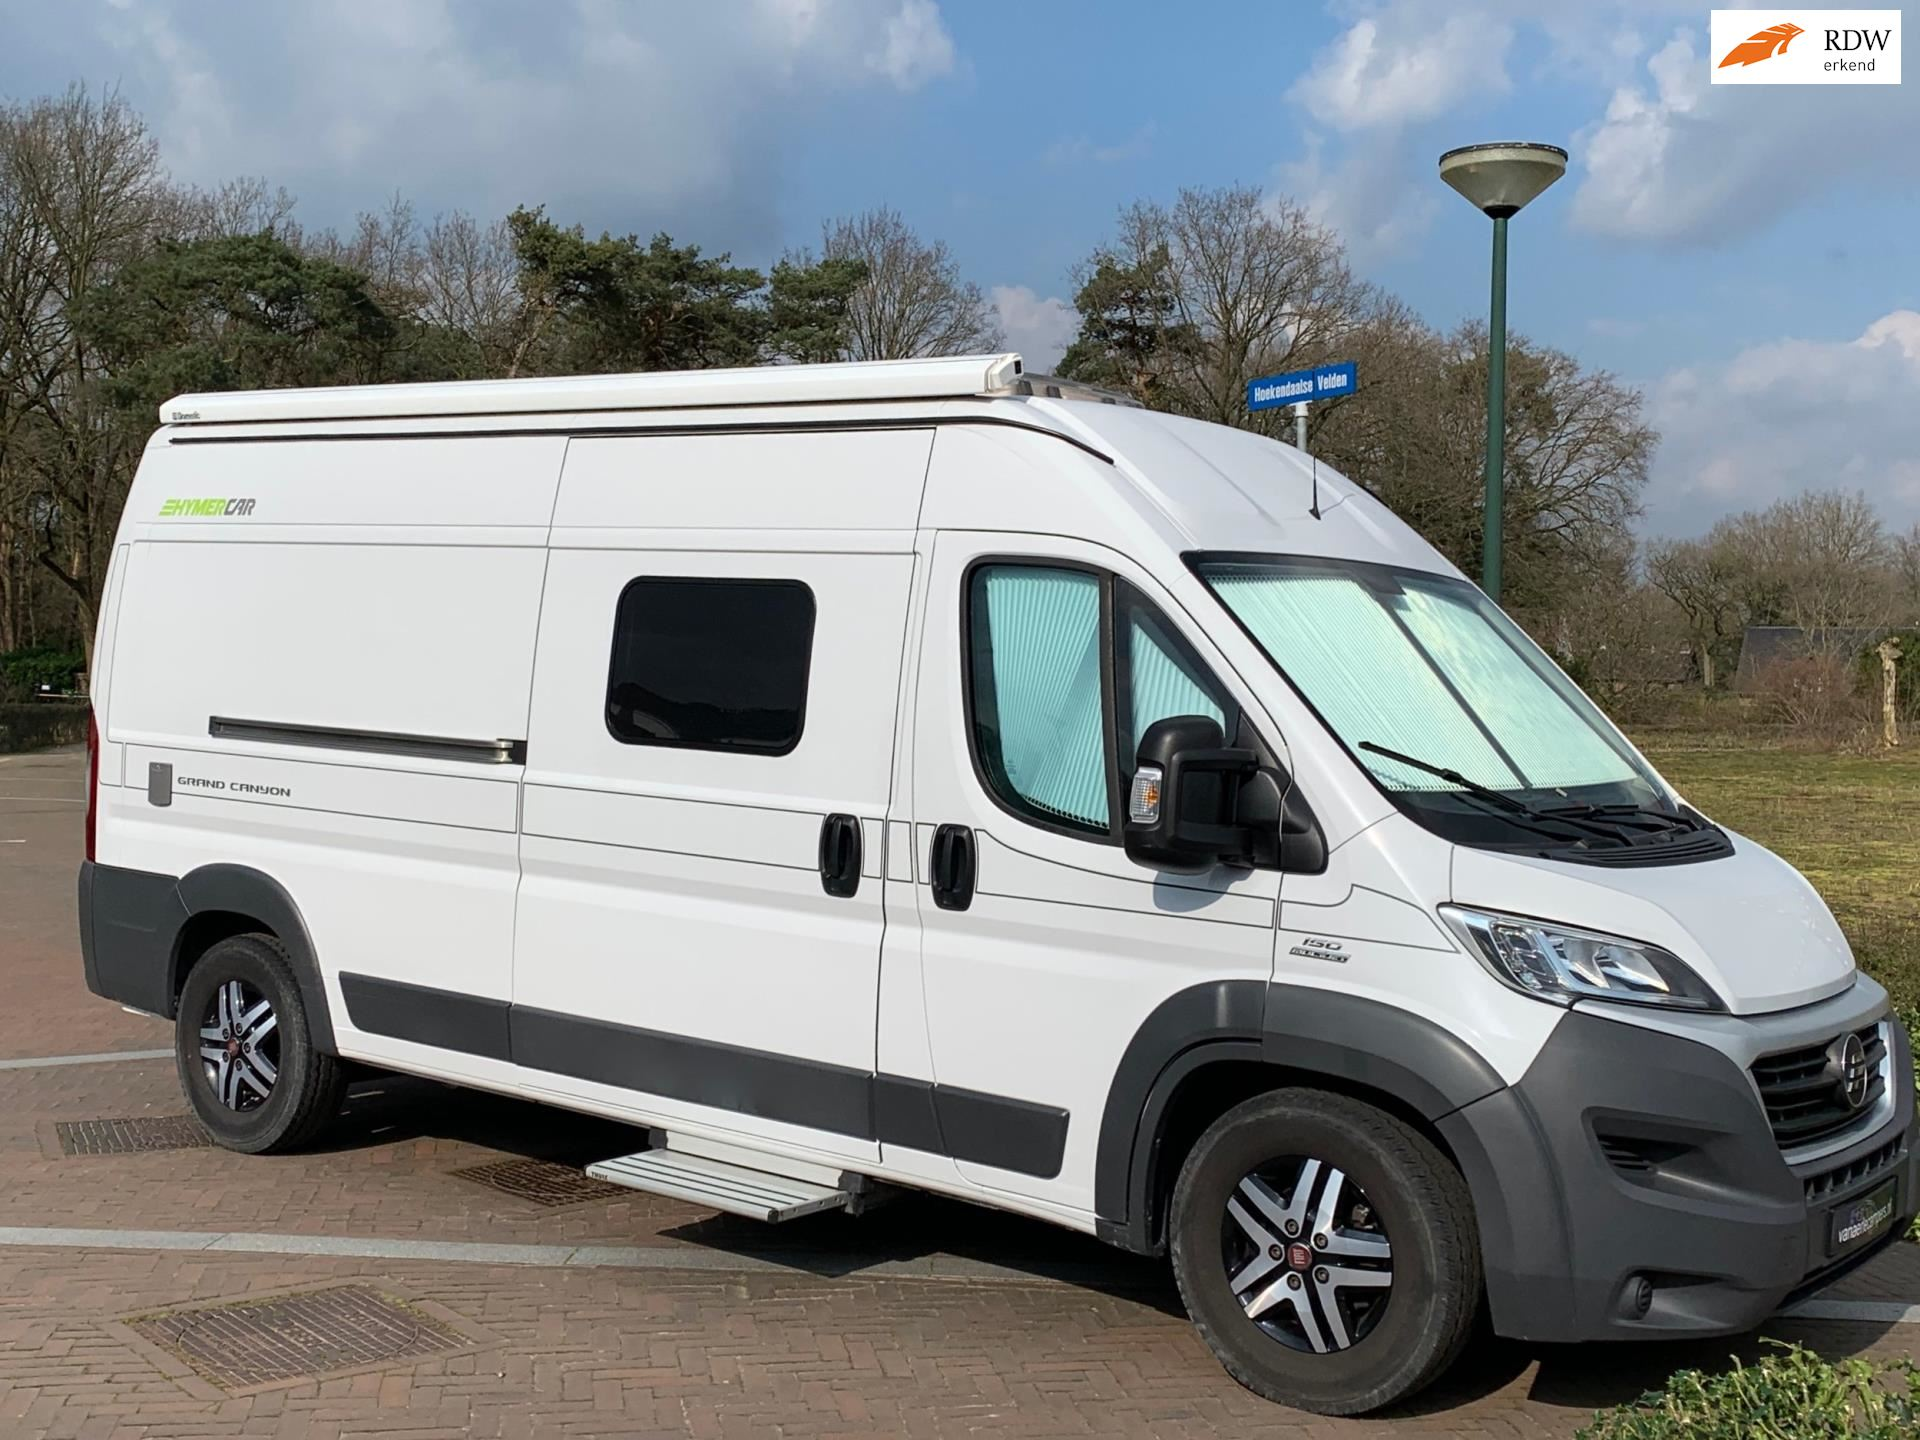 Hymer Hymercar Luxe  Grand Canyon-150 Pk-Buscamper-1e Eig-2016-Zgan occasion - Eric van Aerle Auto's